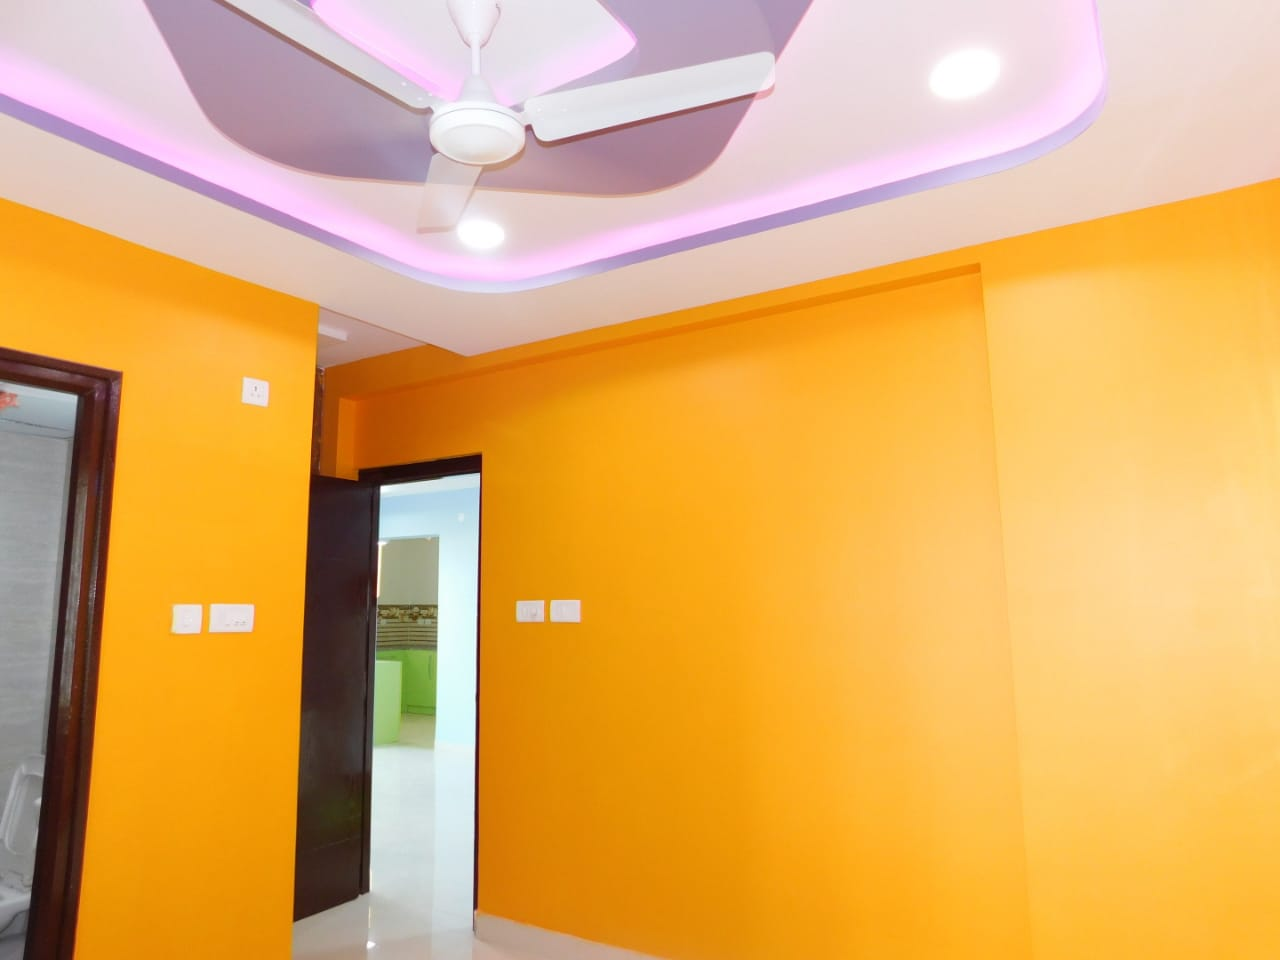 R7 INTERIORS, CHEAP AND BEST INTERIOR DESIGNERS IN HYDERABAD,CHEAP AND BEST INTERIOR DESIGNERS IN SECUNDERABAD, CHEAP AND BEST INTERIOR DESIGNERS IN  GACHIBOWLI, CHEAP AND BEST INTERIOR DESIGNERS IN GOPANPALLY,